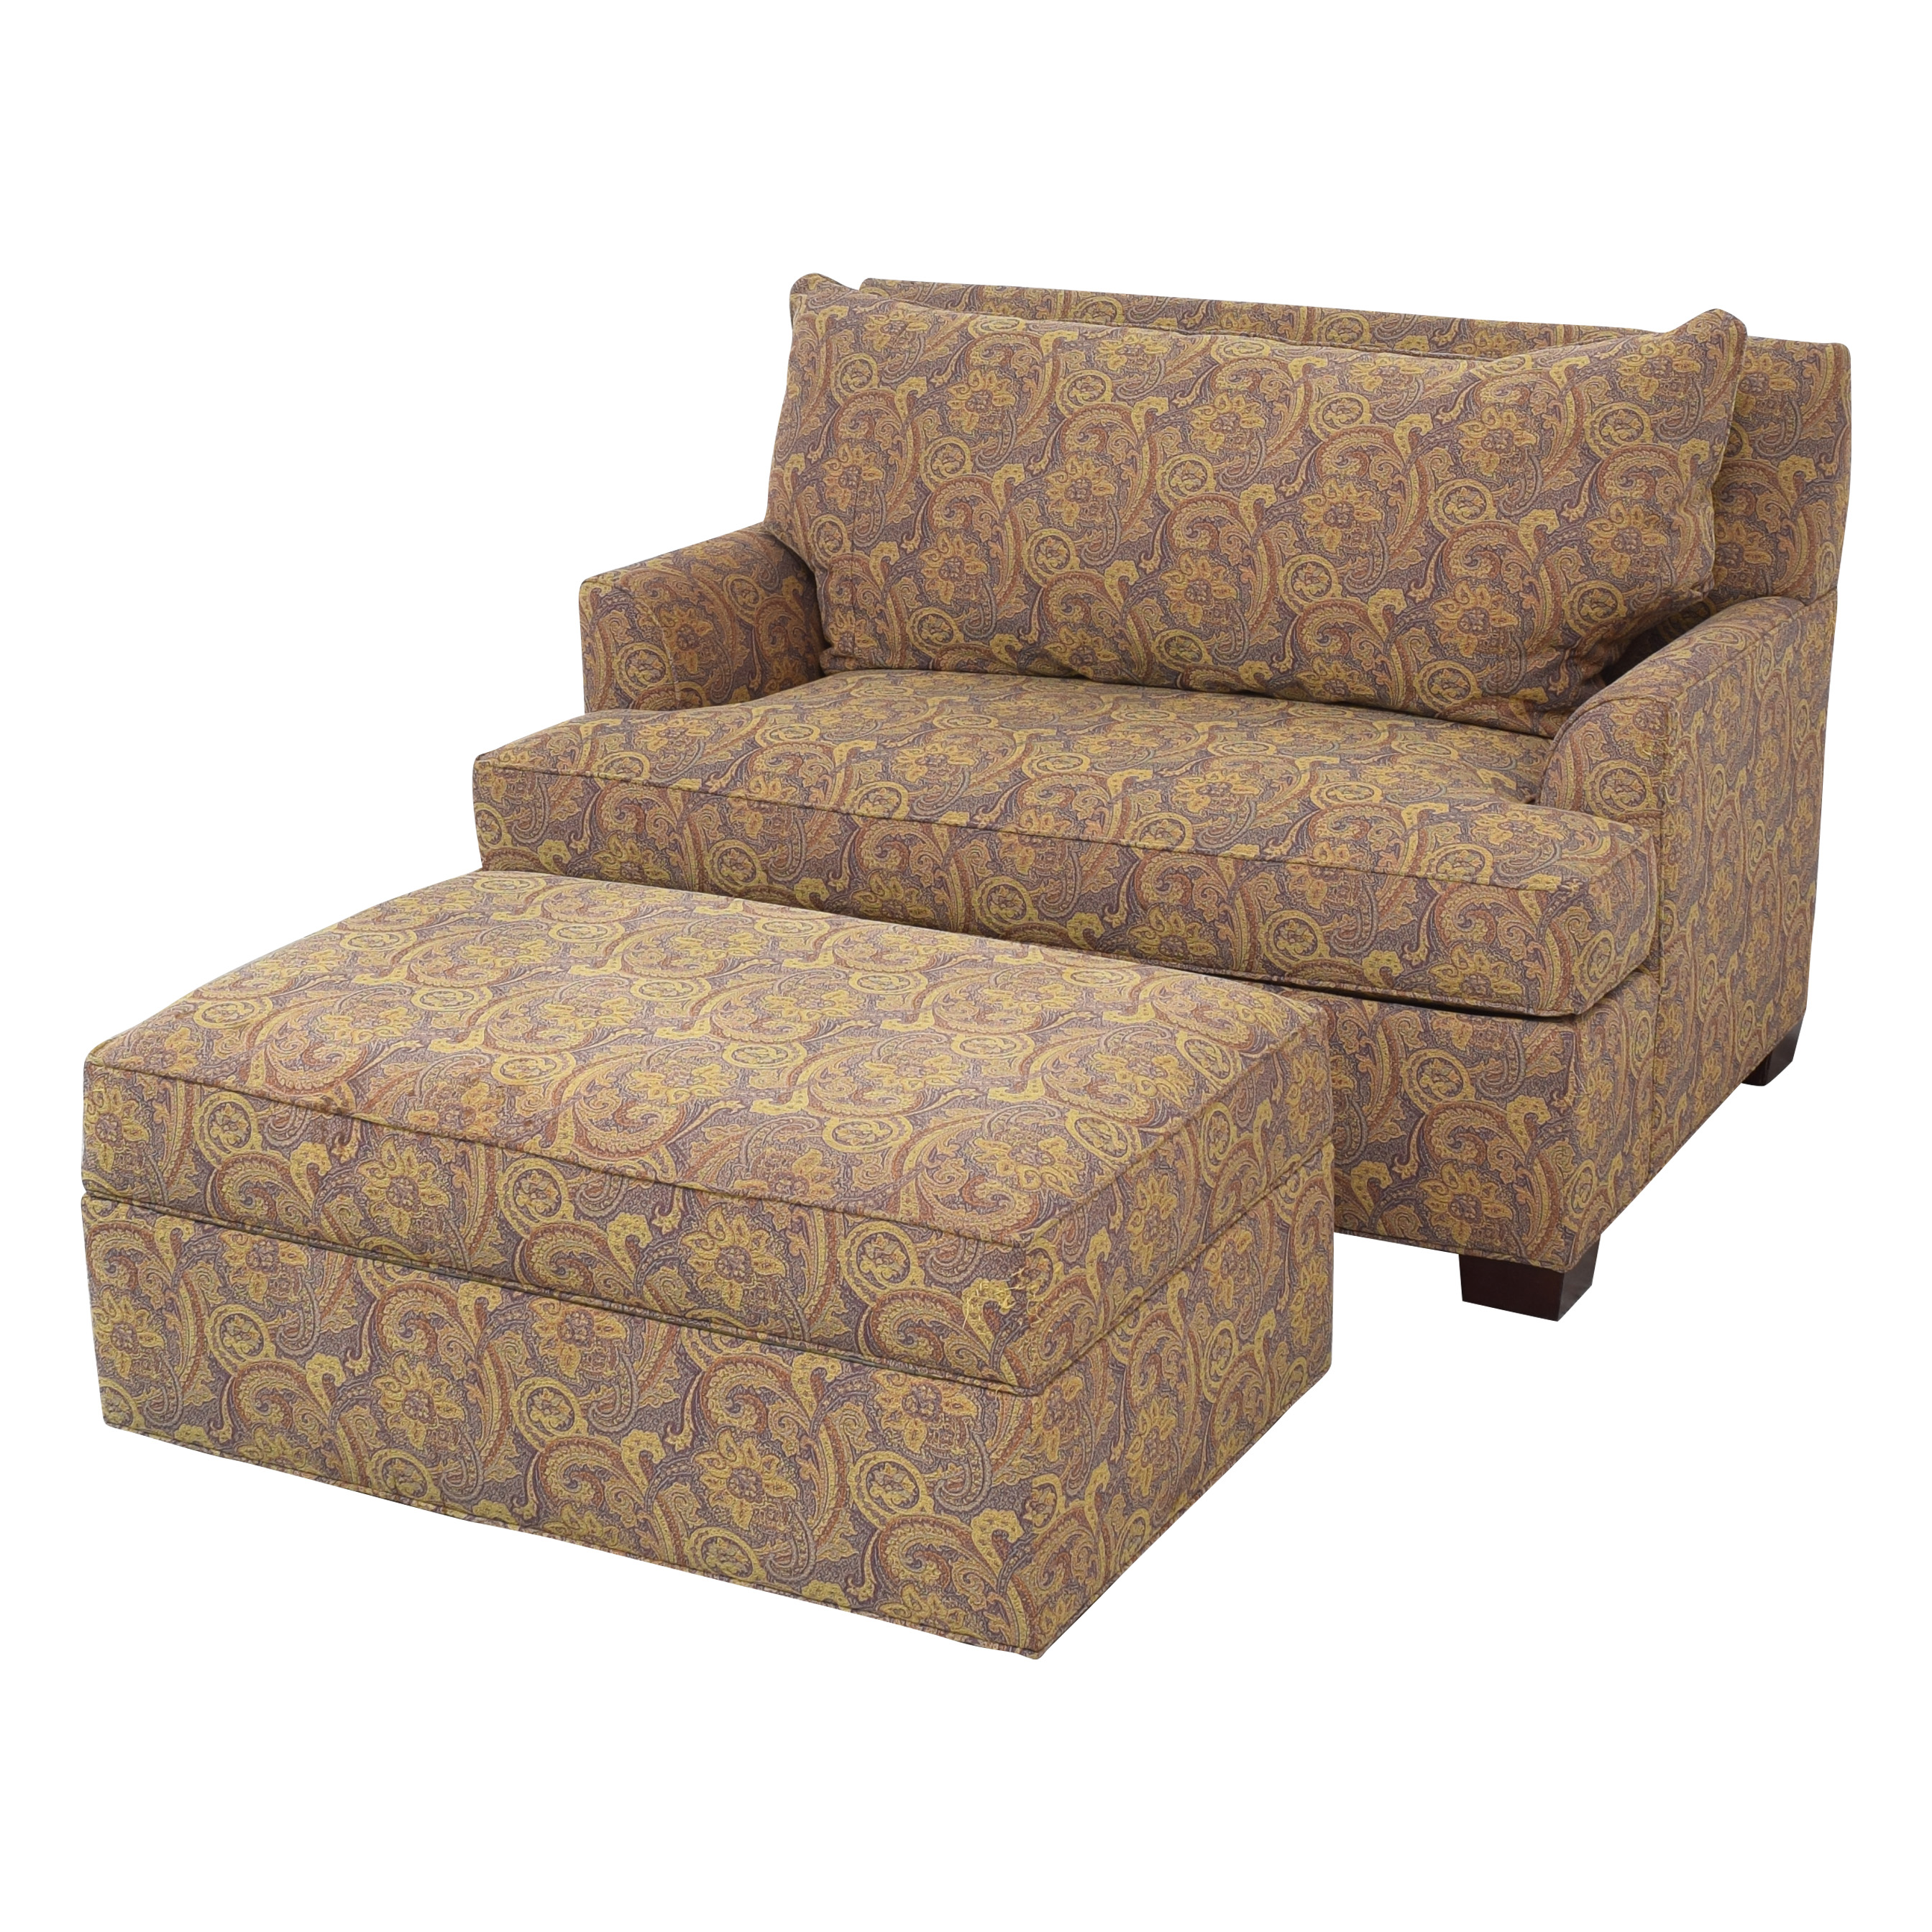 Ethan Allen Ethan Allen Marina Chair and a Half Twin Sleeper with Ottoman coupon